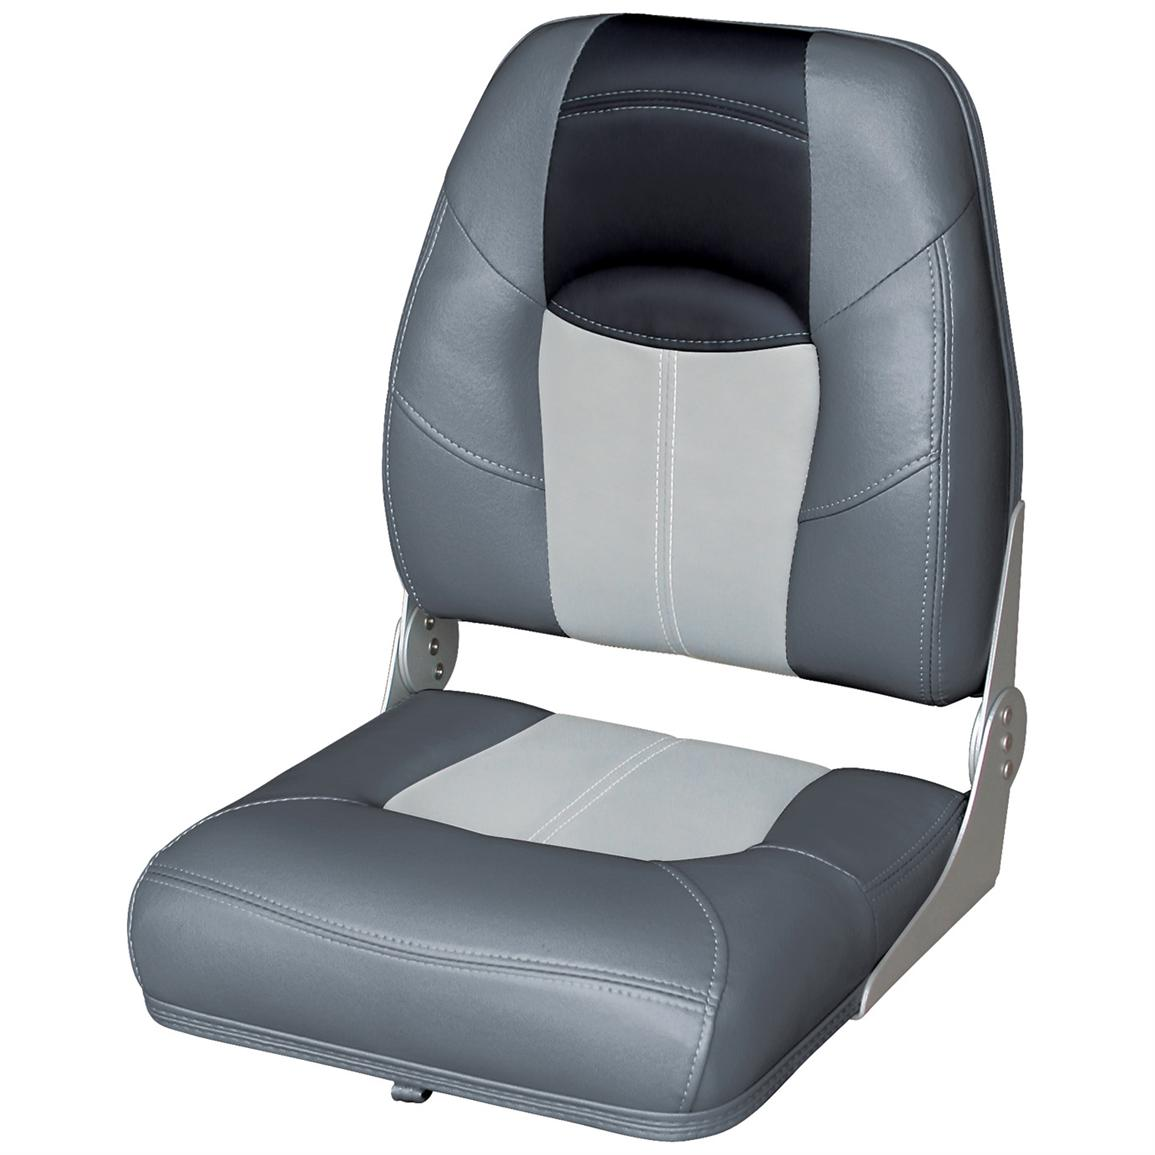 Wise® Blast-Off™ Series High Back Folding Boat Seat, Charcoal / Grey / Black